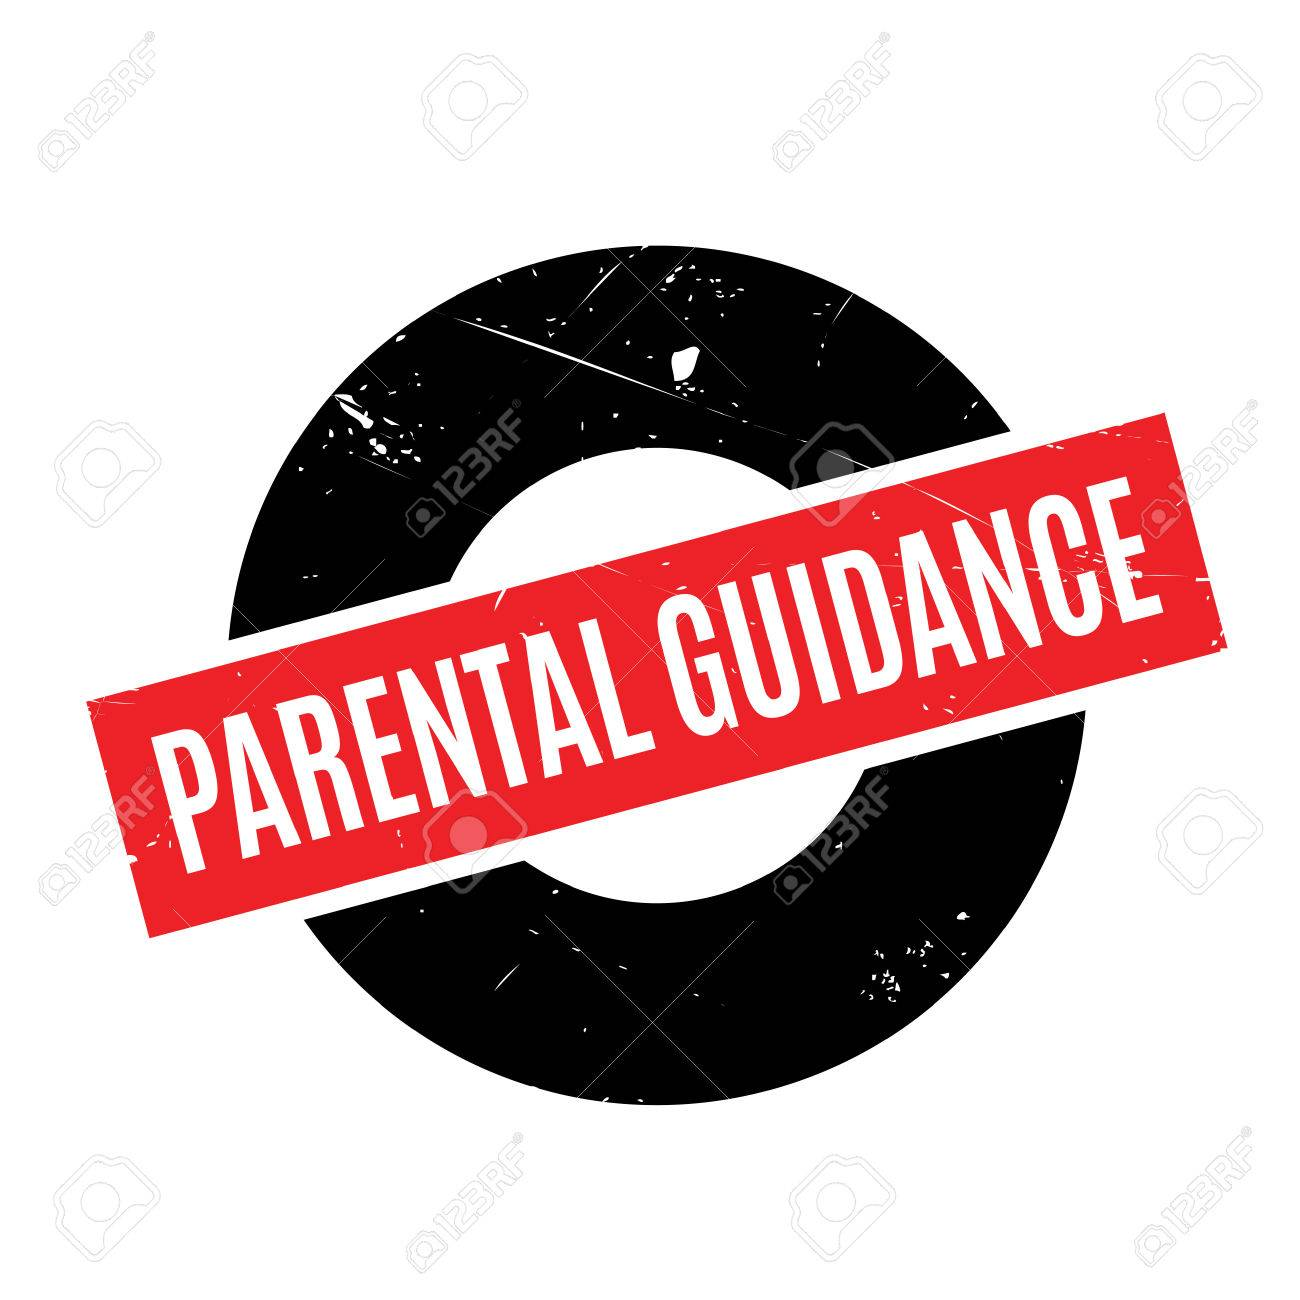 Parental Guidance Rubber Stamp Grunge Design With Dust Scratches